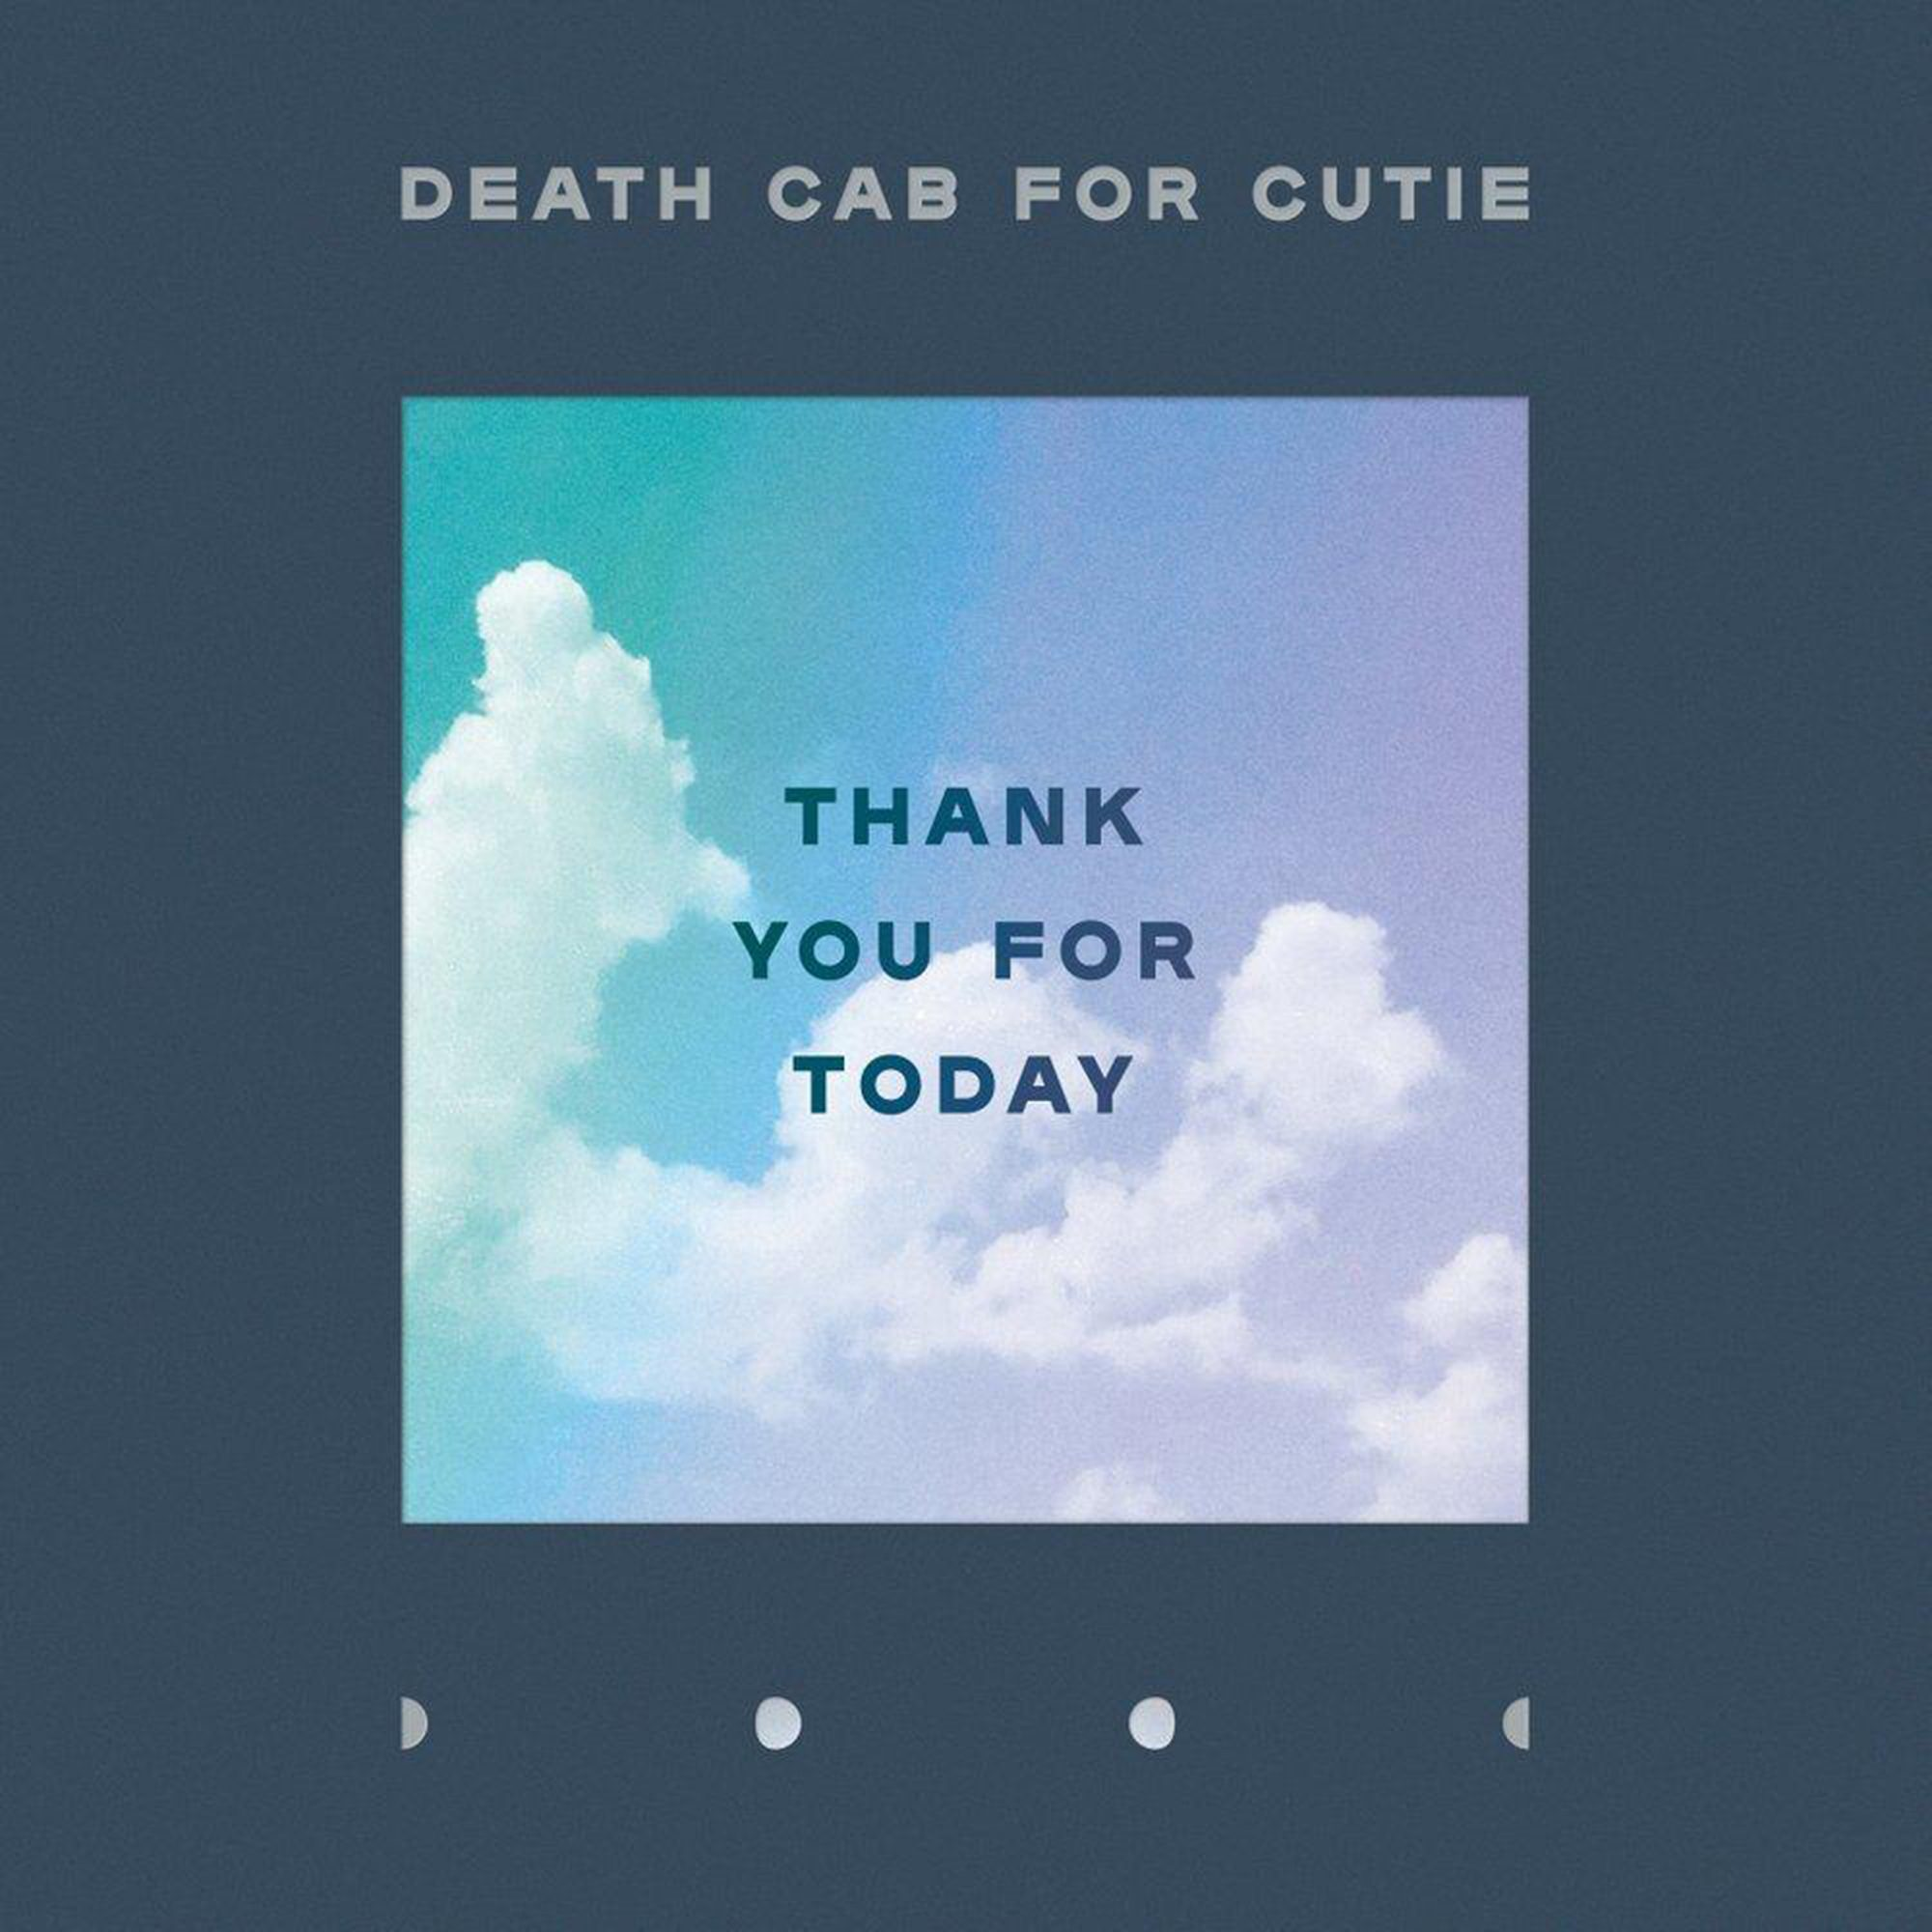 Death Cab for Cutie Thank You For TodayCredit: Thank You For Today